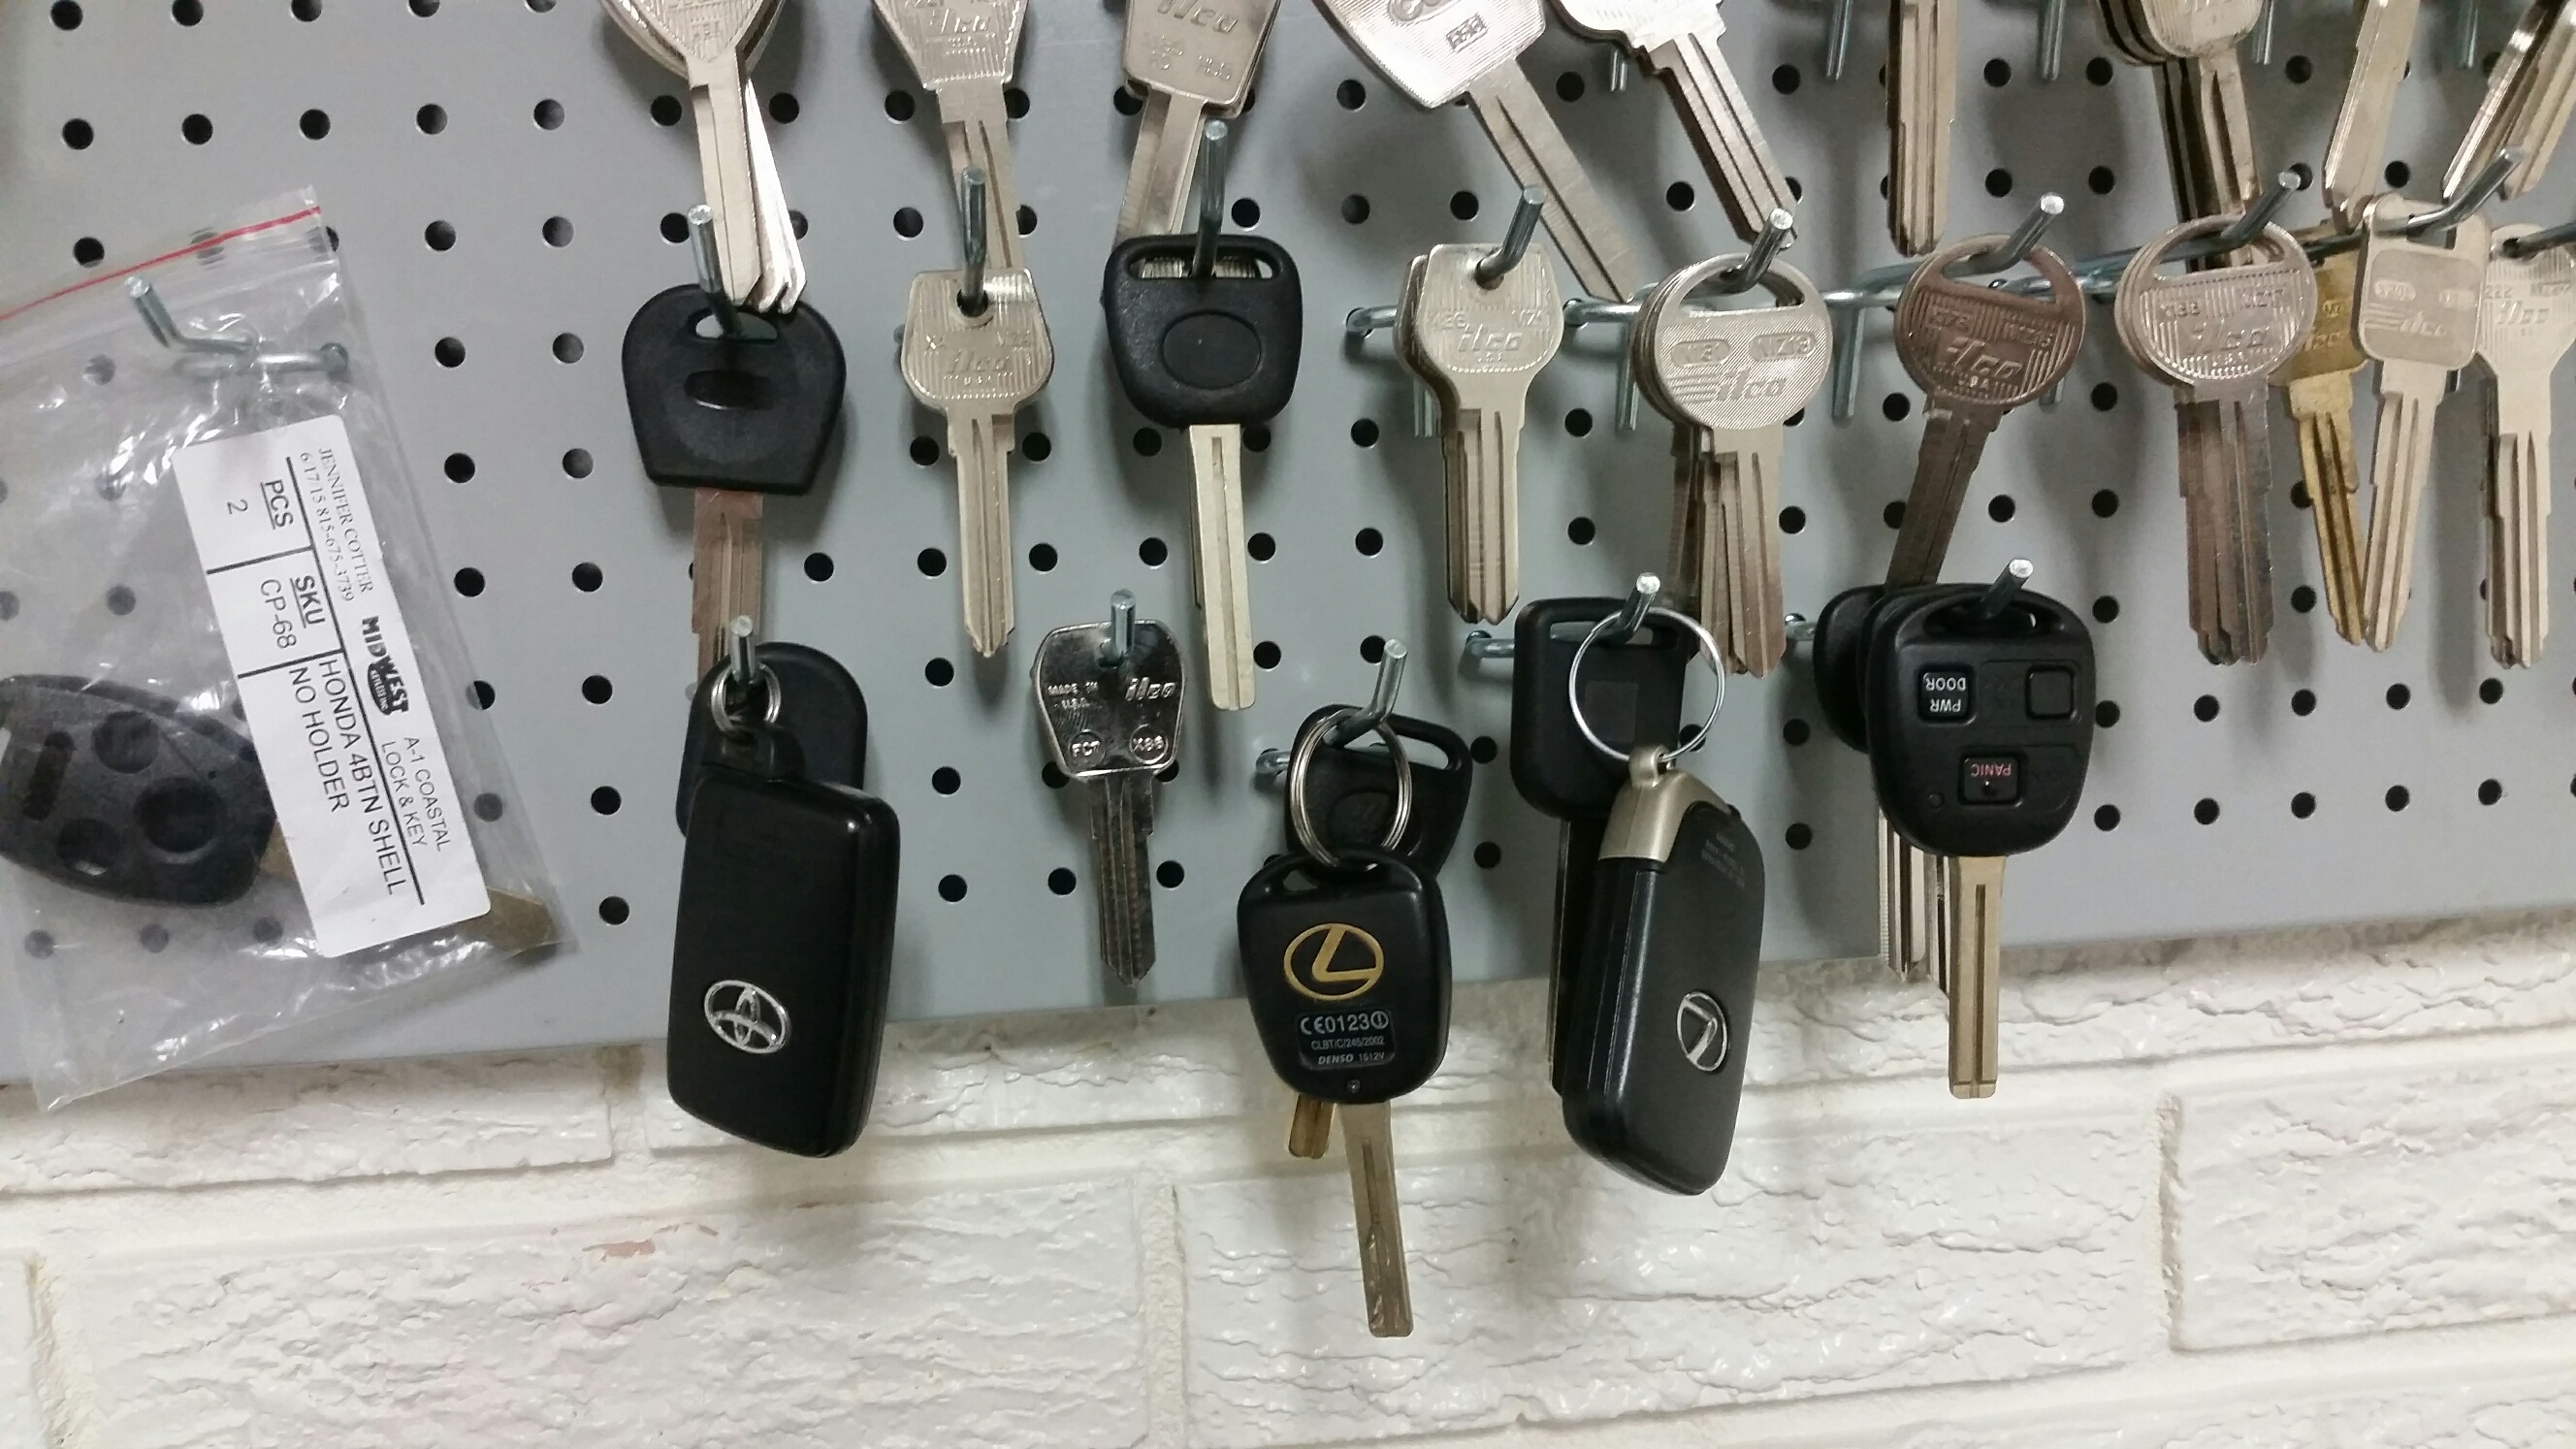 Replacement Car Key Southport NC